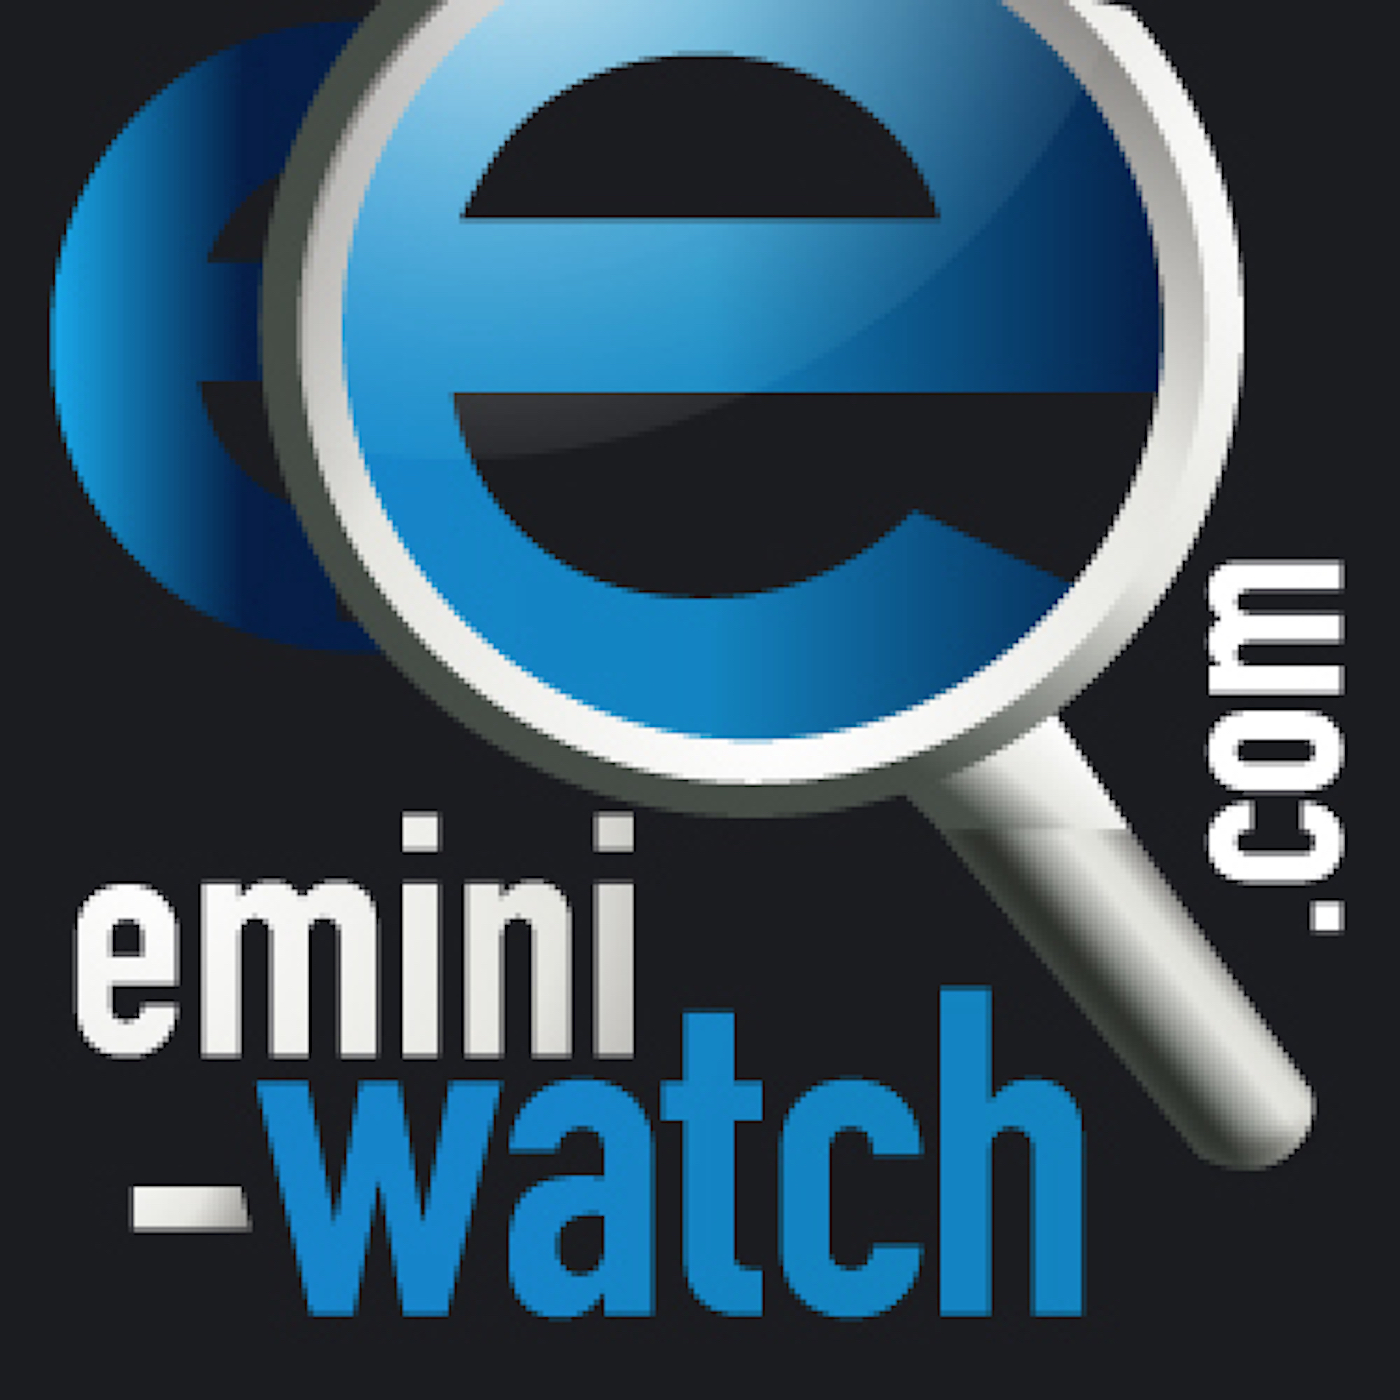 Emini Day Trading Podcast | Emini-Watch.com